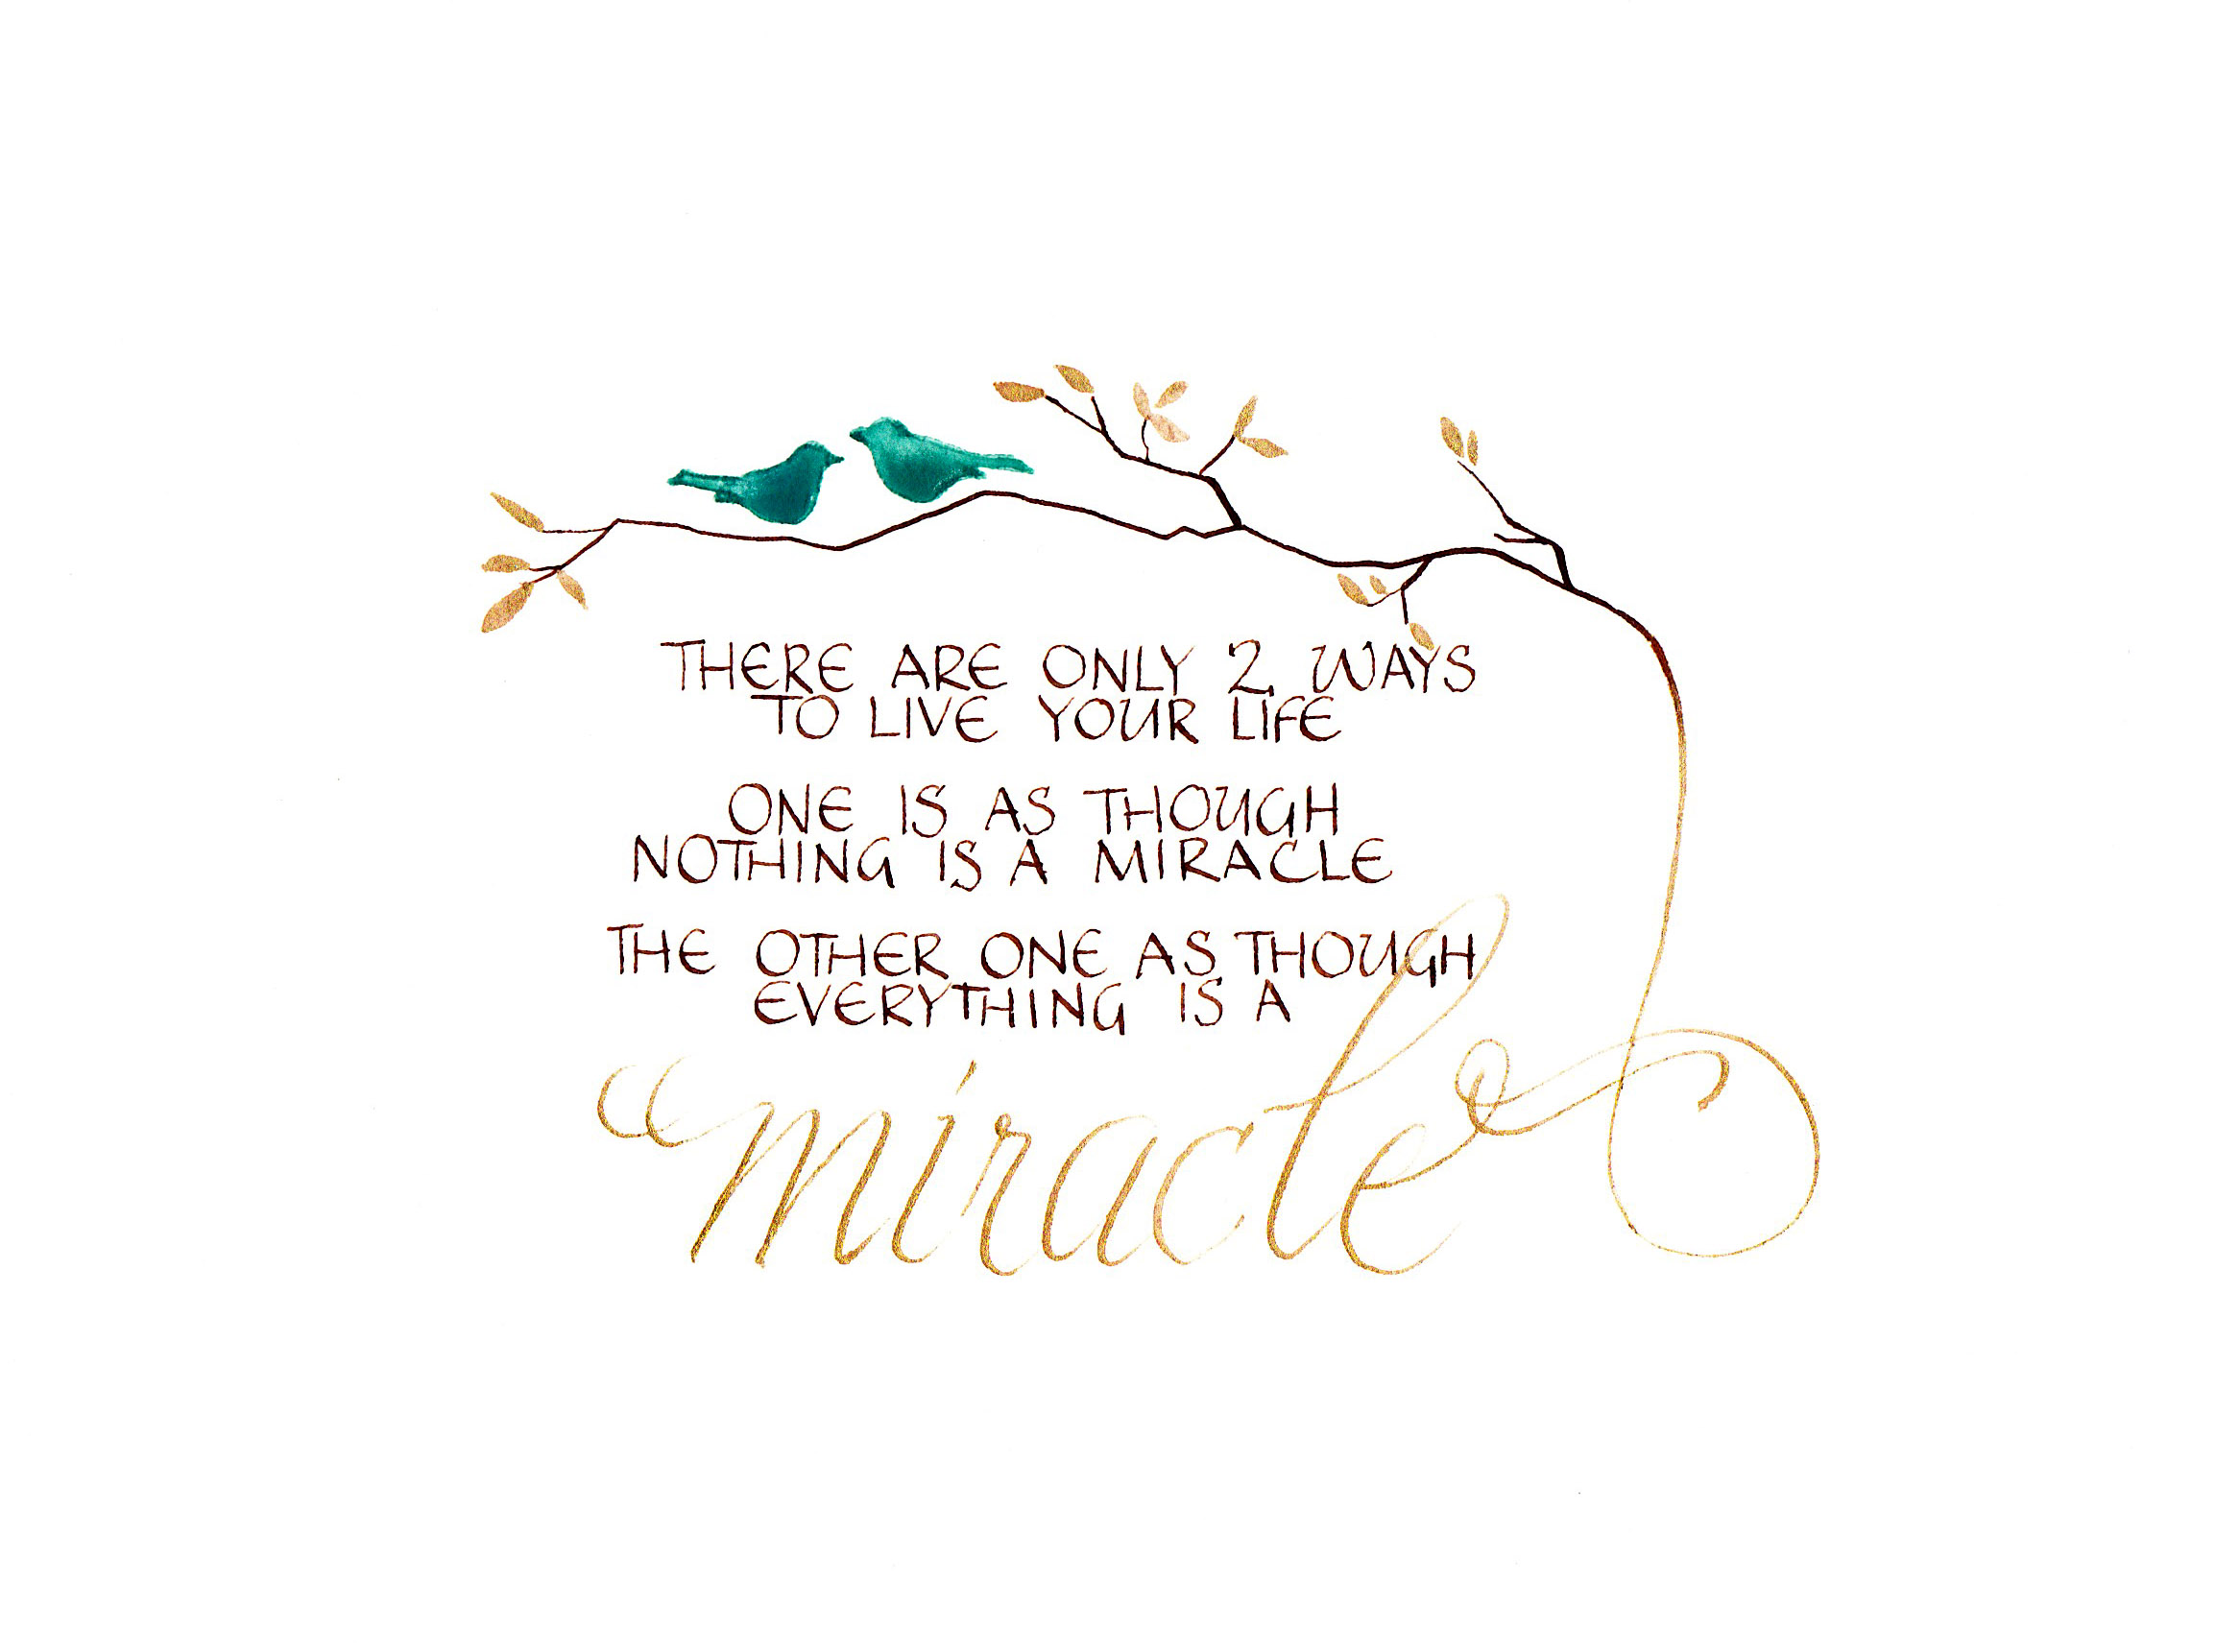 watercolor illustration, uncial variation and pointed pen lettering in gold ink. Quote by Albert Einstein.